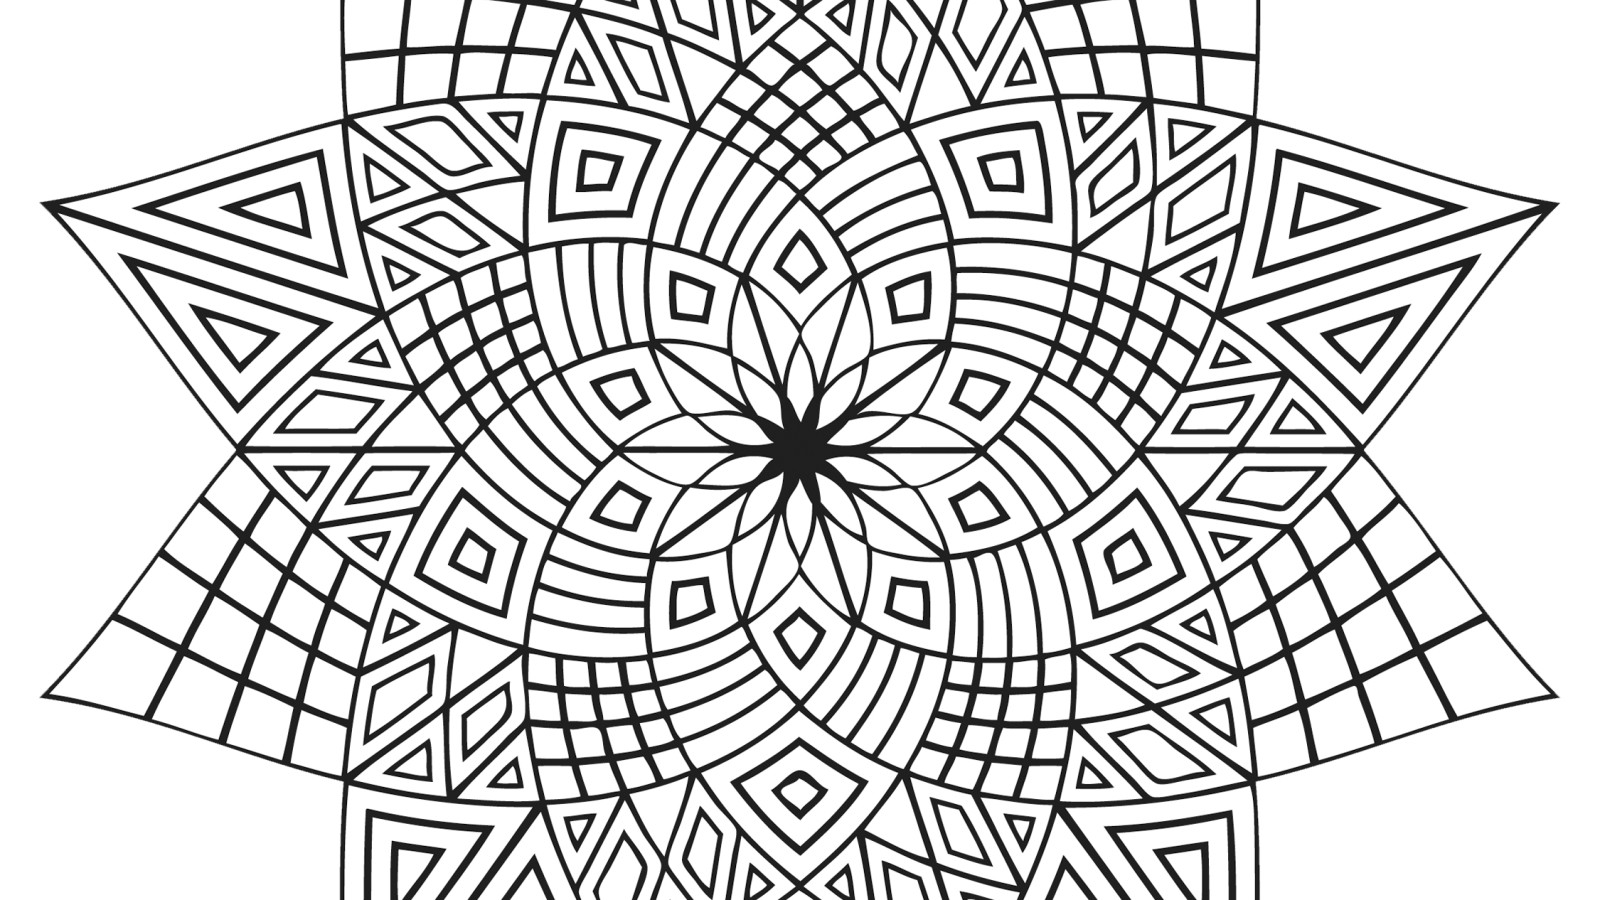 Complex Flower Coloring Pages At Getcolorings